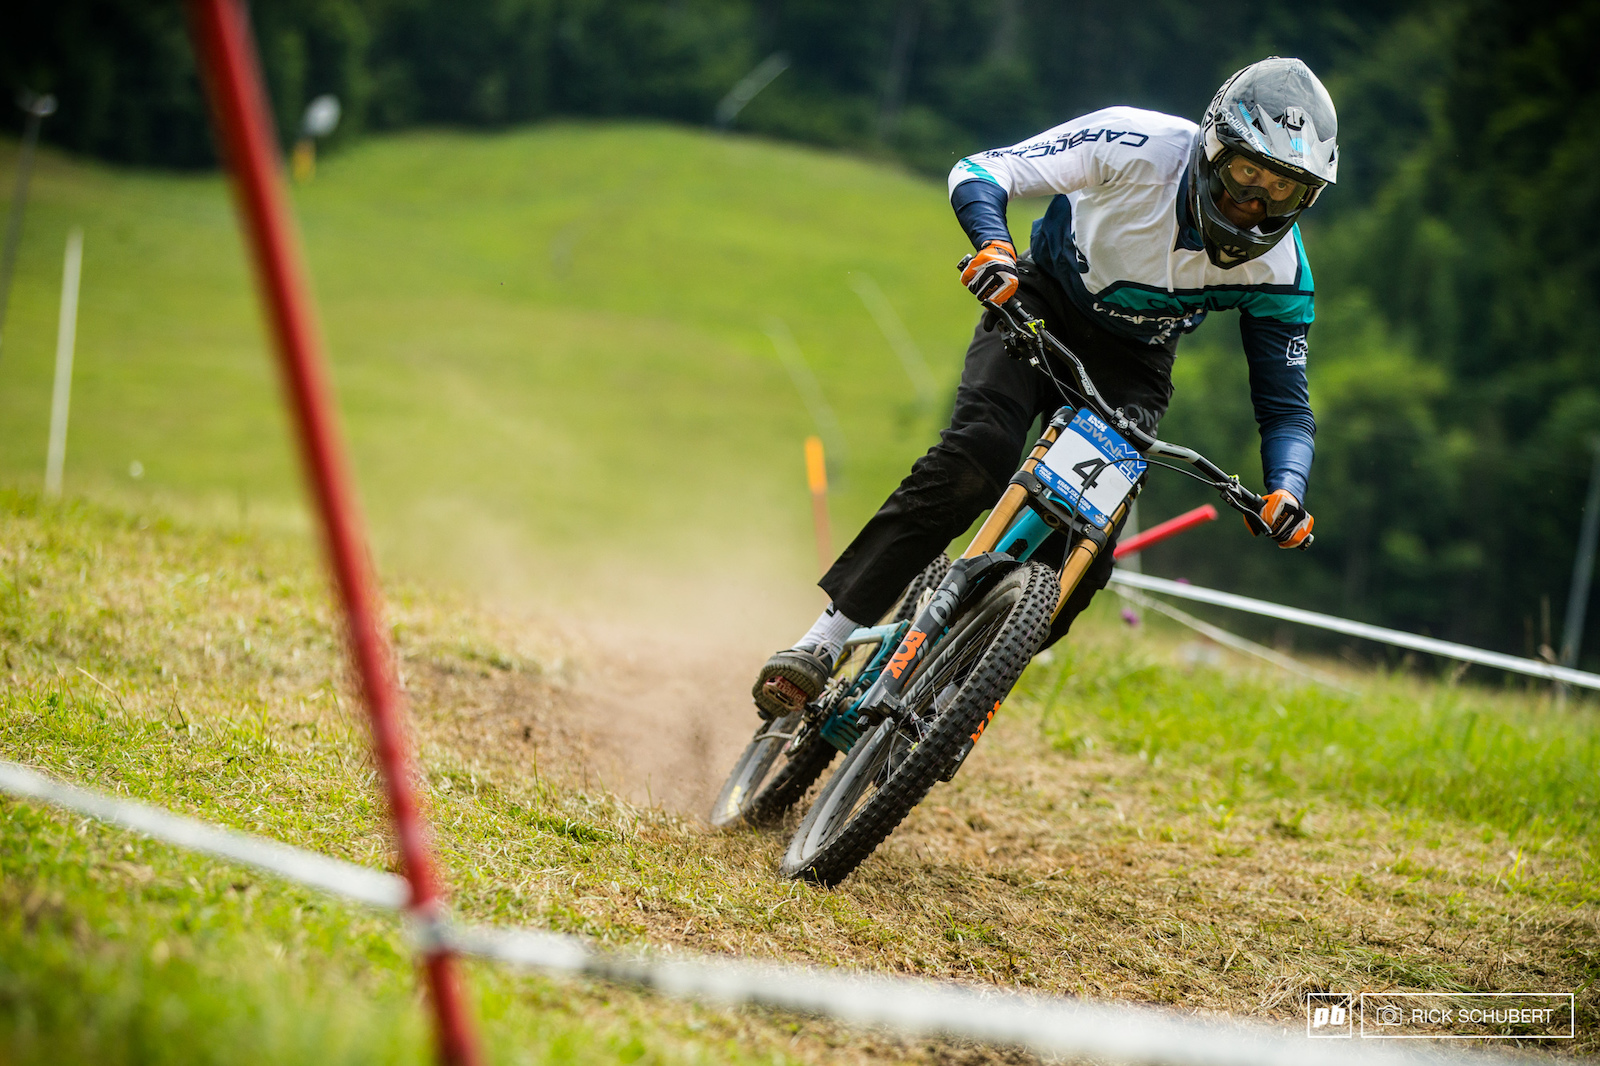 Patience great riding and pure competitiveness by Joshua Barth who won his first elite race